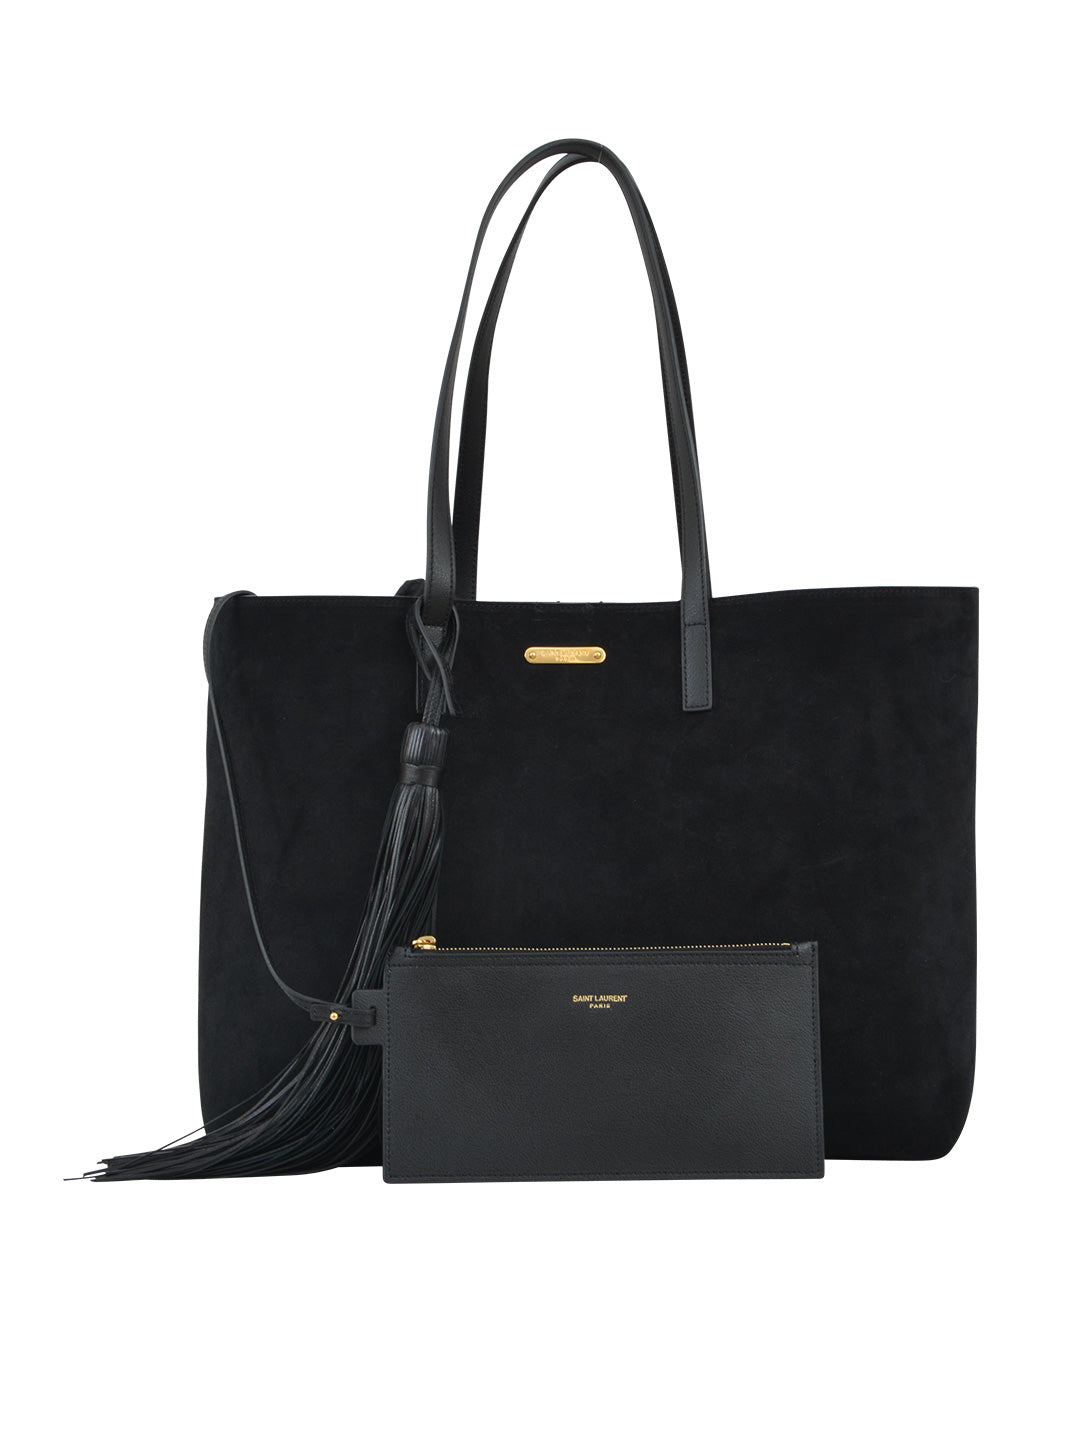 SAINT LAURENT TASSEL SHOPPING TOTE